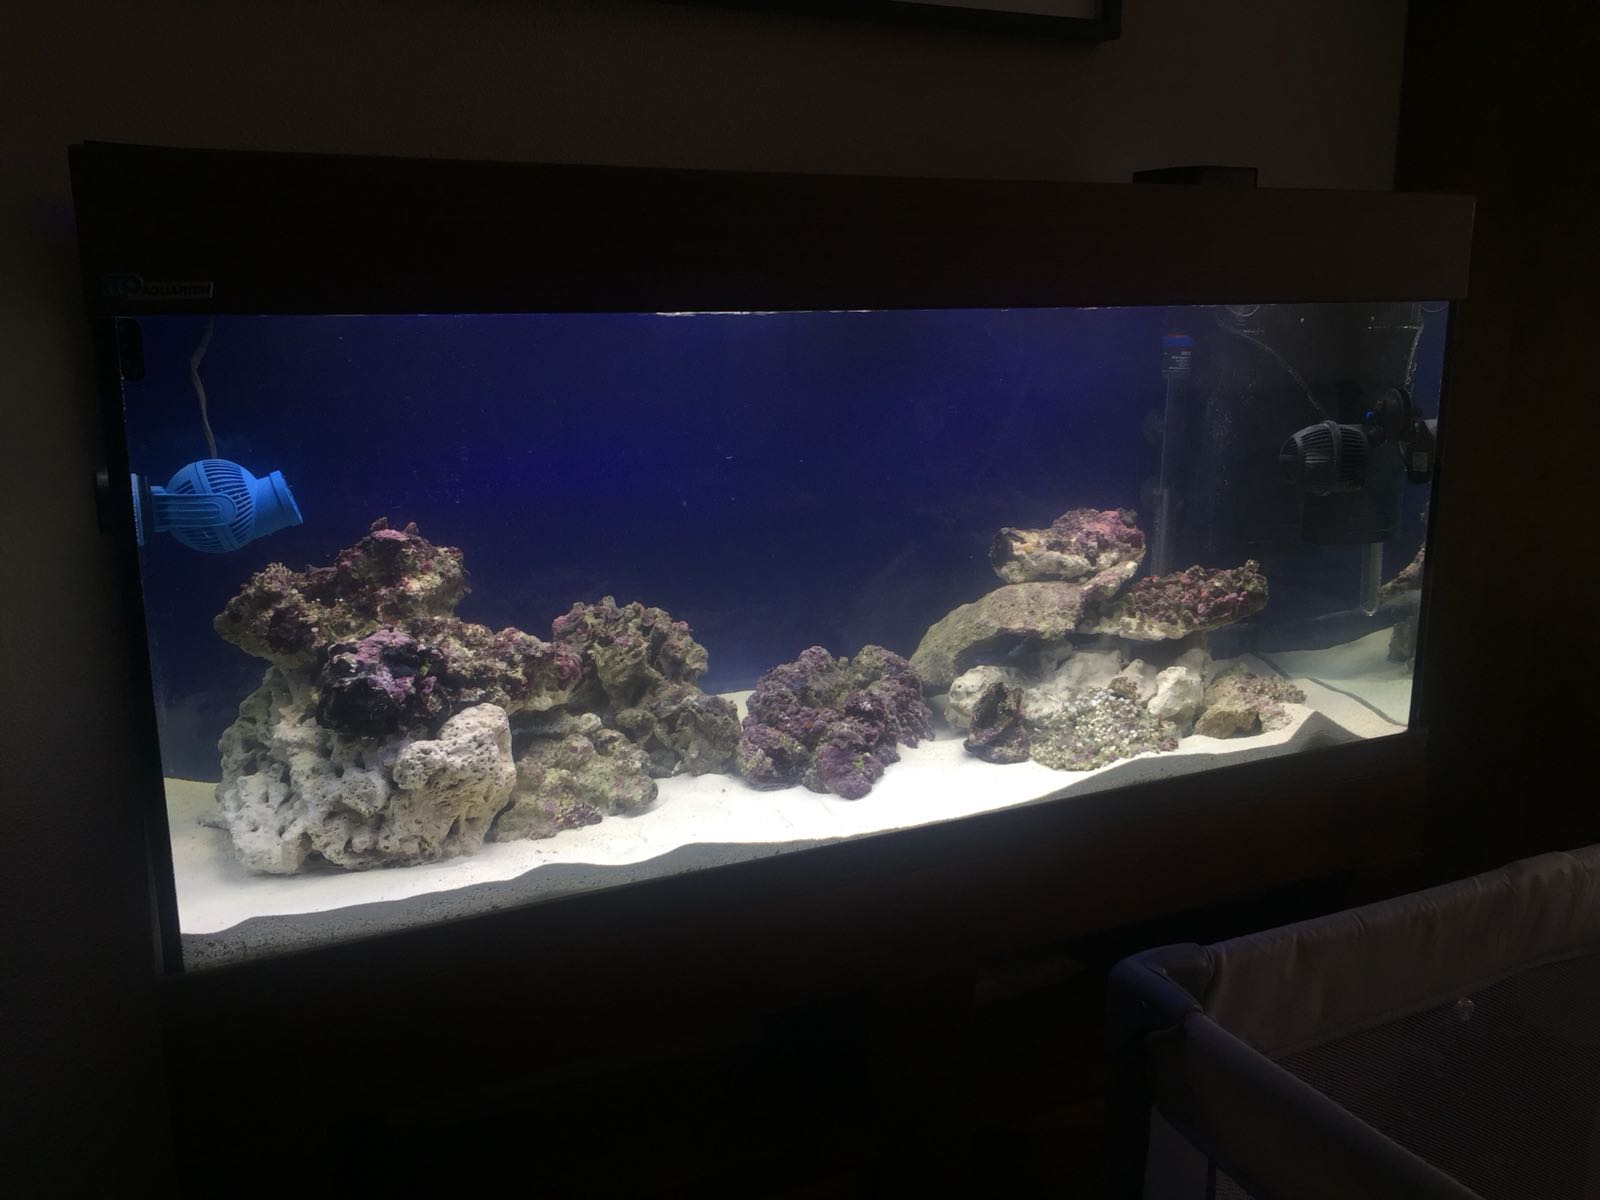 WhatsApp Image 2018-03-06 at 16.37.47 (1).jpeg